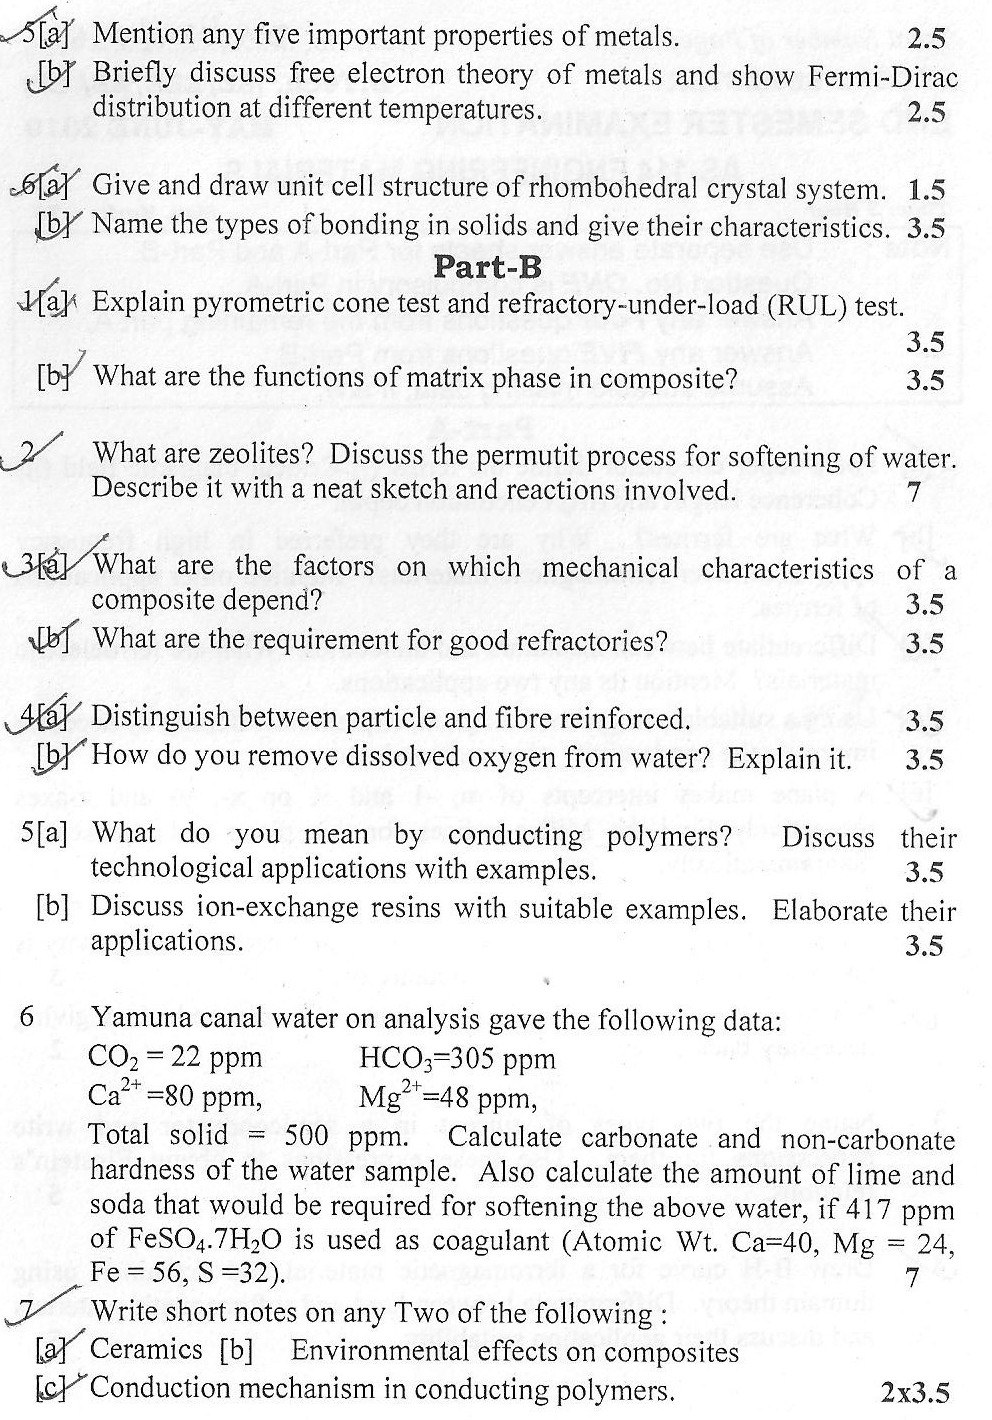 DTU Question Papers 2010 – 2 Semester - End Sem - AS-114